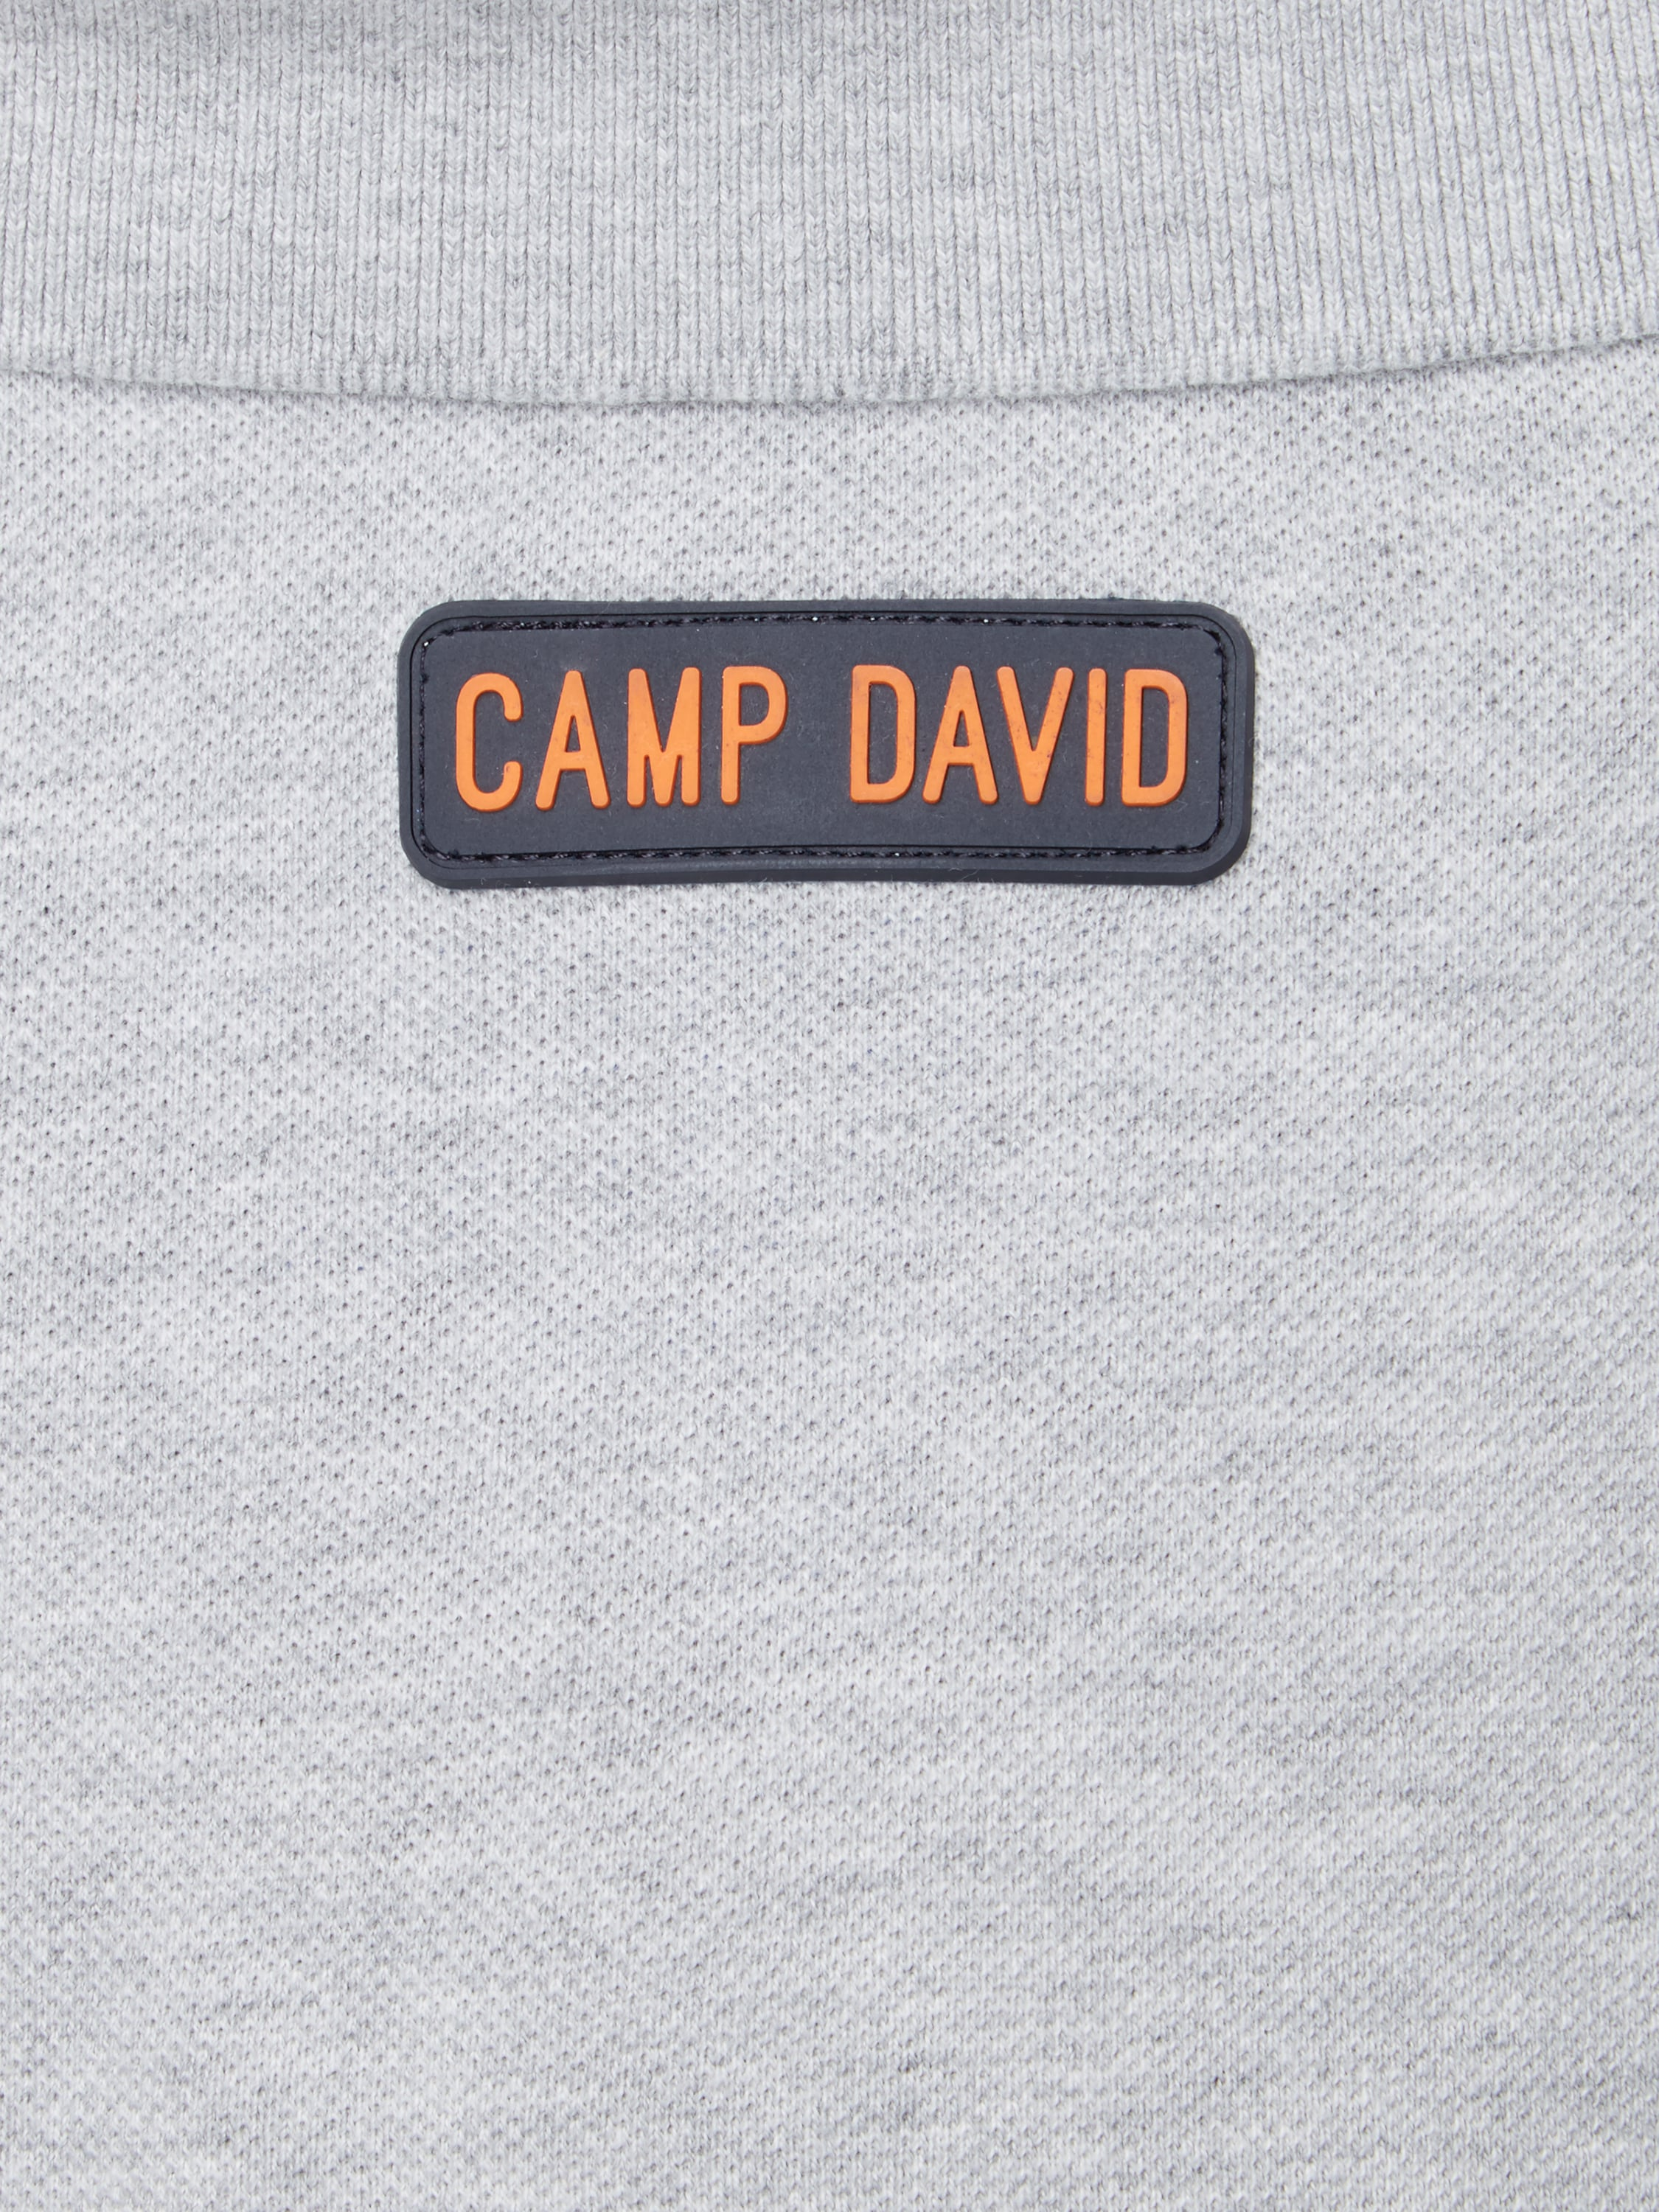 camp david poloshirt mit logo details in grau schwarz online kaufen. Black Bedroom Furniture Sets. Home Design Ideas